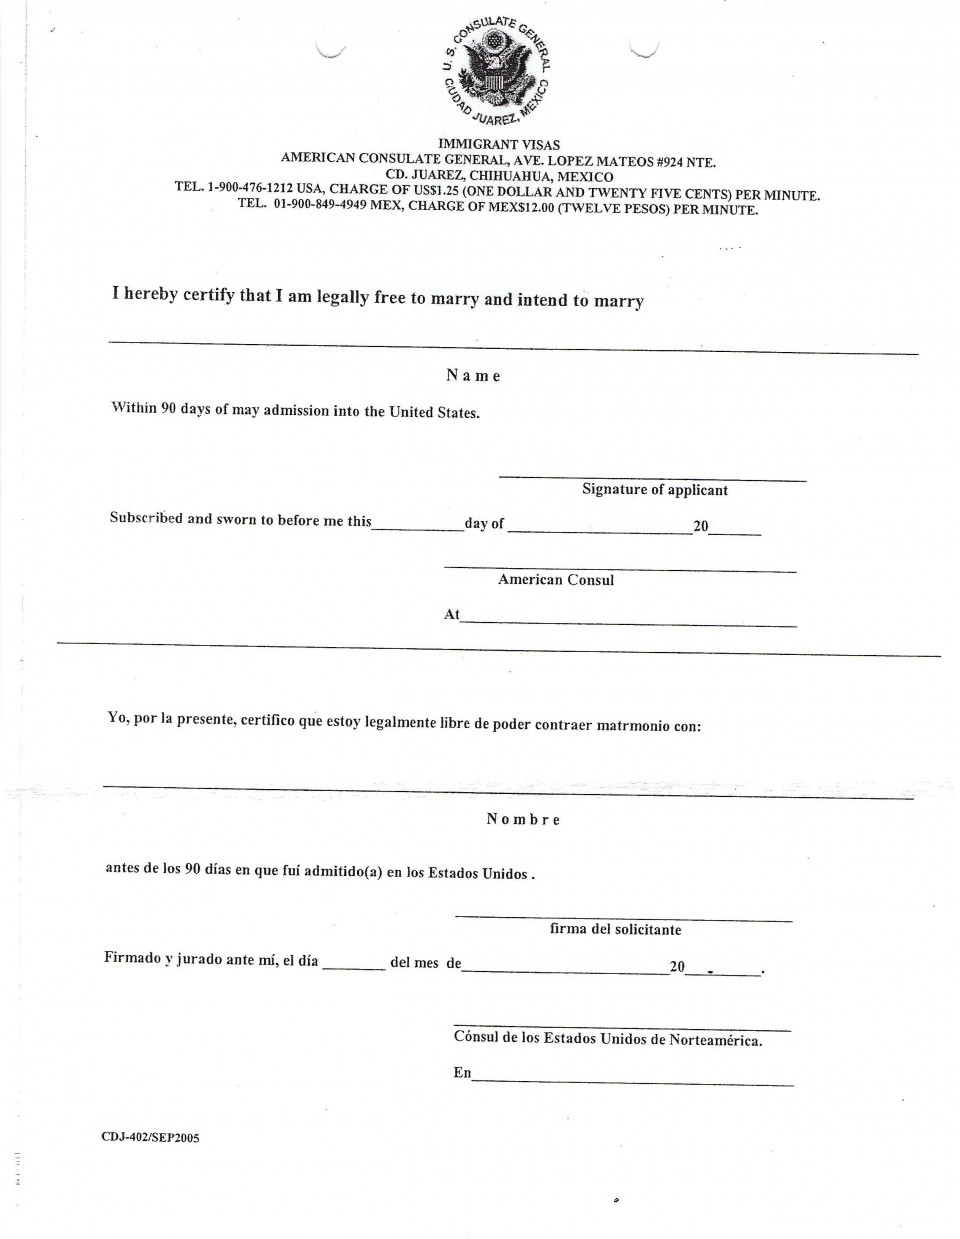 010 Immigration Research Paper Outline Stunning Reform 960